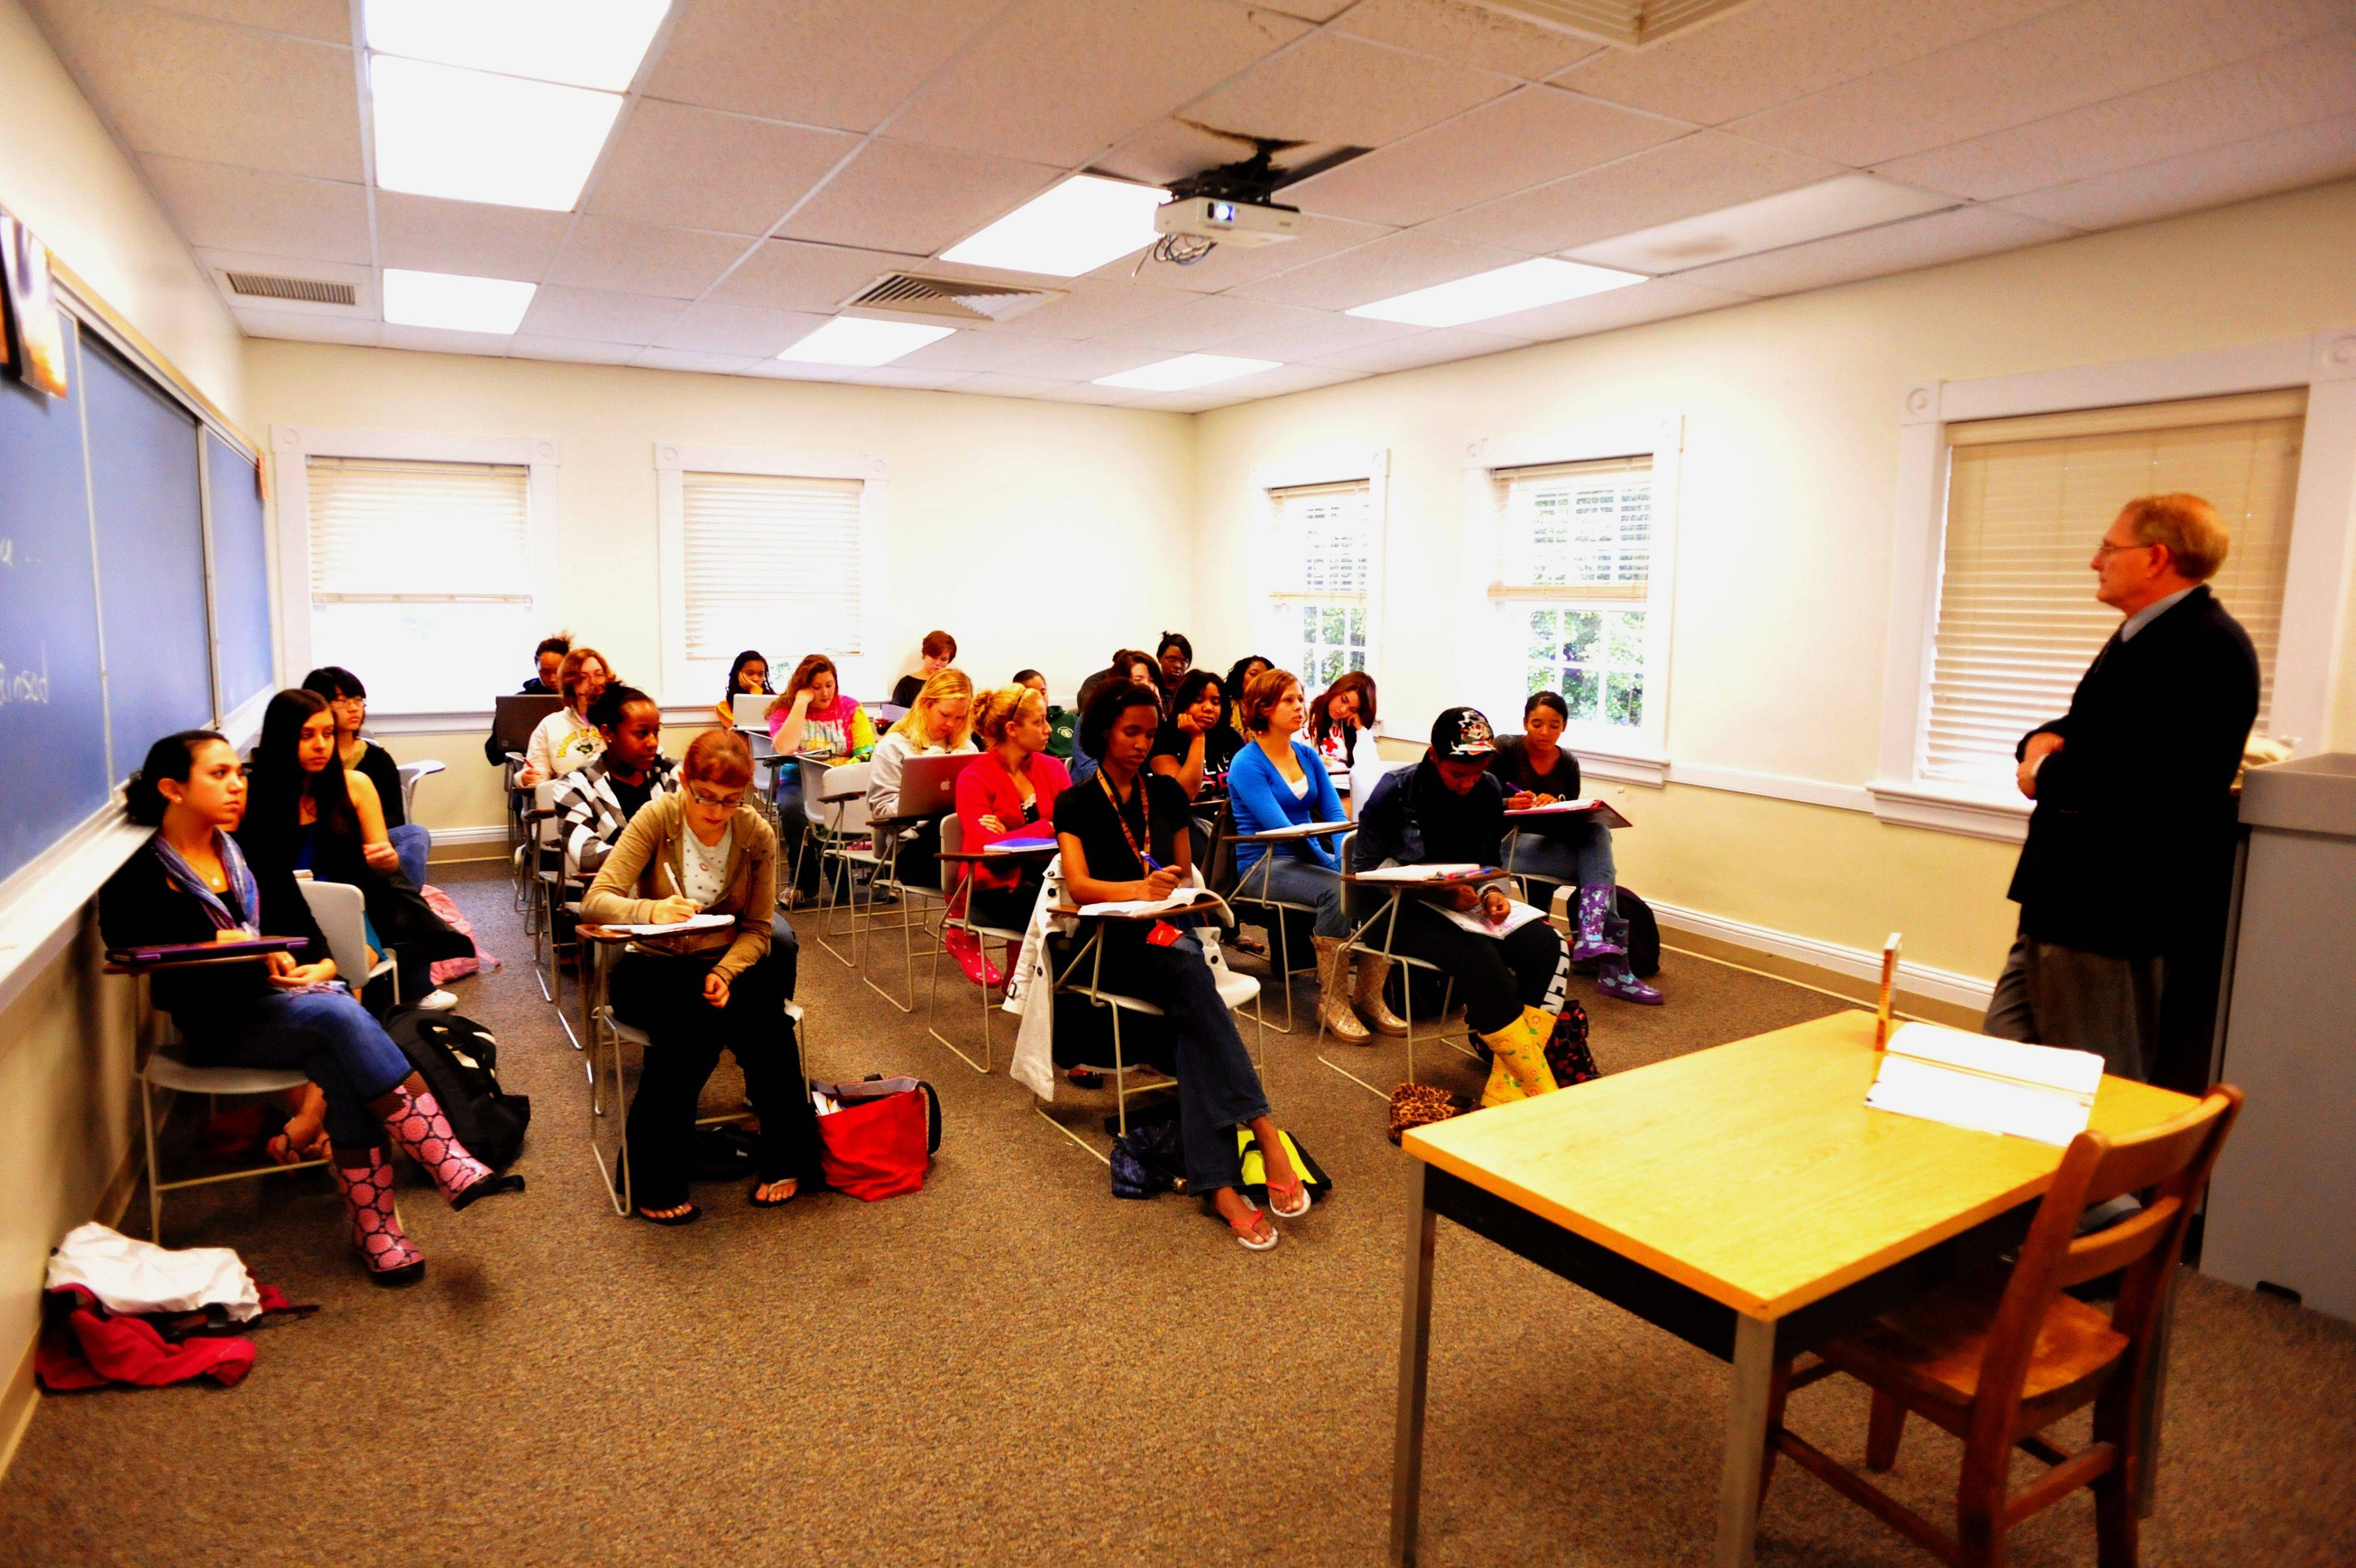 Jenna Markovska, 15, left row, middle seat, sits in a comparative politics class taught by professor Gordon L. Bowen at Mary Baldwin College in Staunton, Va. The Palatine resident enrolled at the women's college at 14 years old.